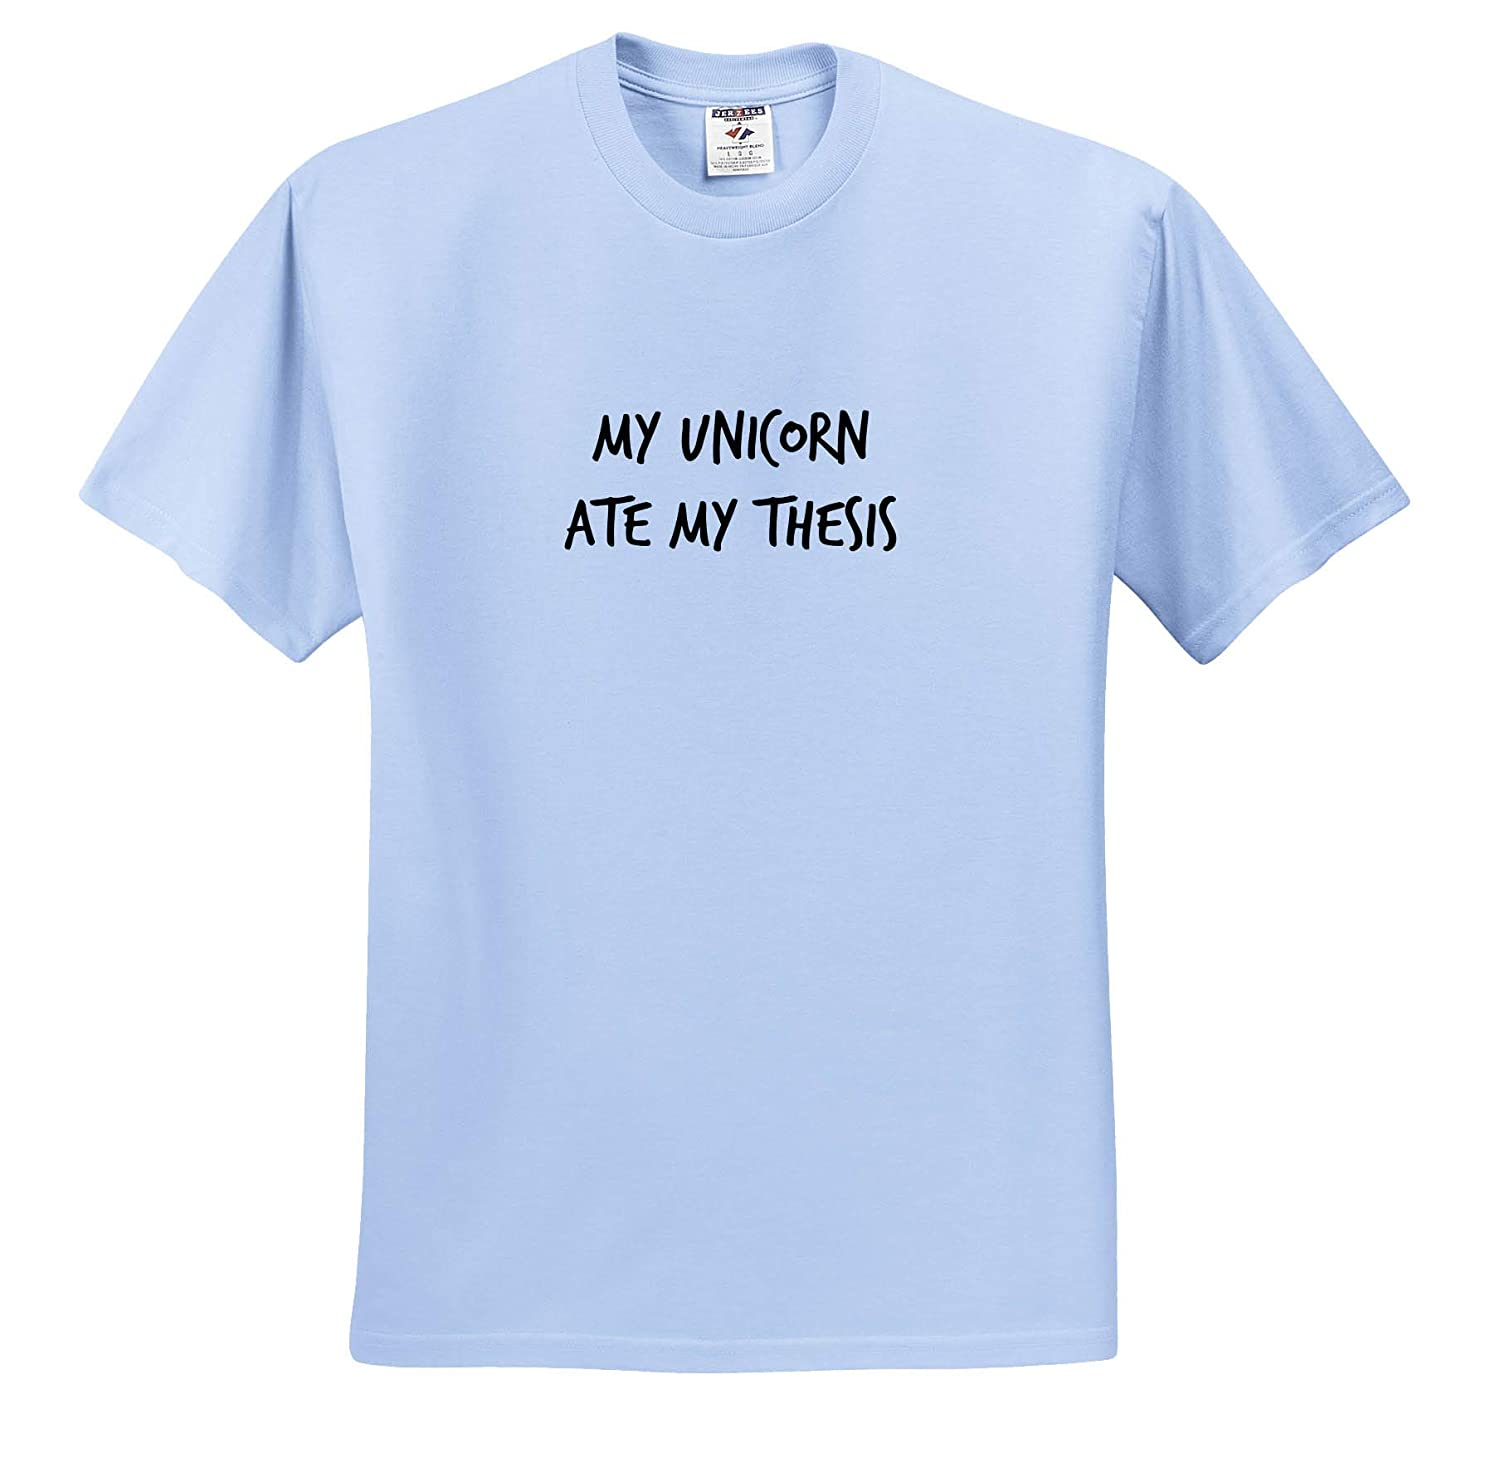 3dRose Gabriella-Quote Image of My Unicorn Ate My Thesis Quote ts/_317866 Adult T-Shirt XL